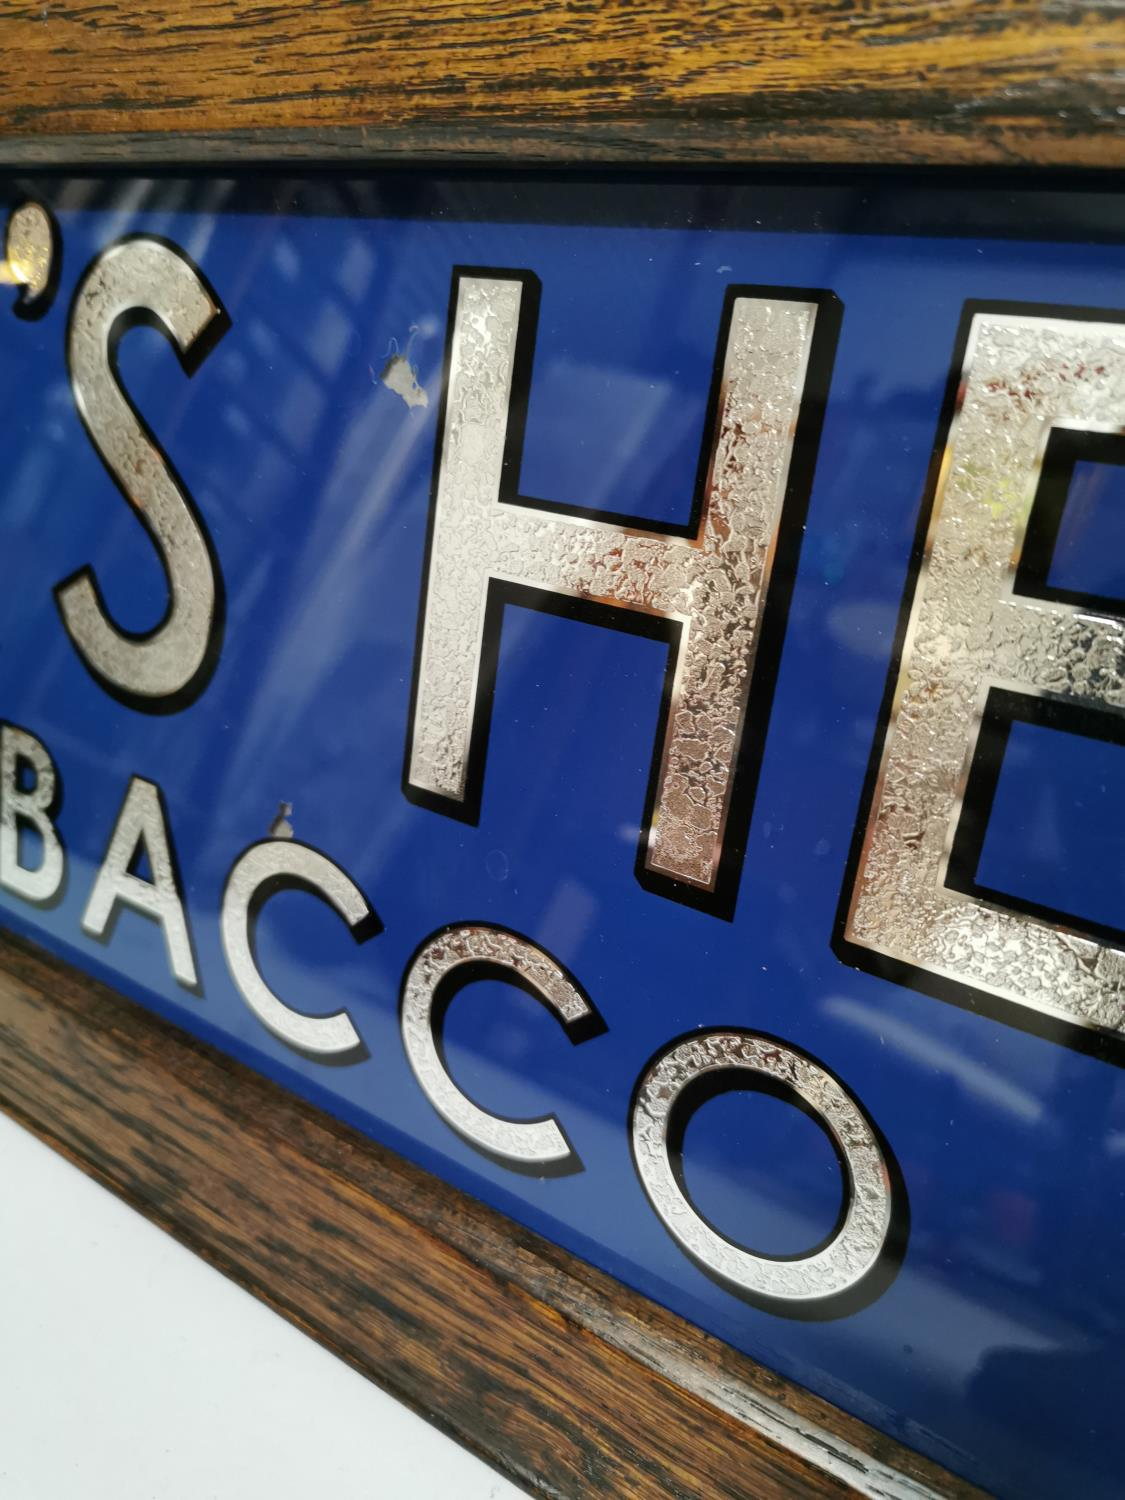 Boar's Head tobacco advertising sign. - Image 3 of 4